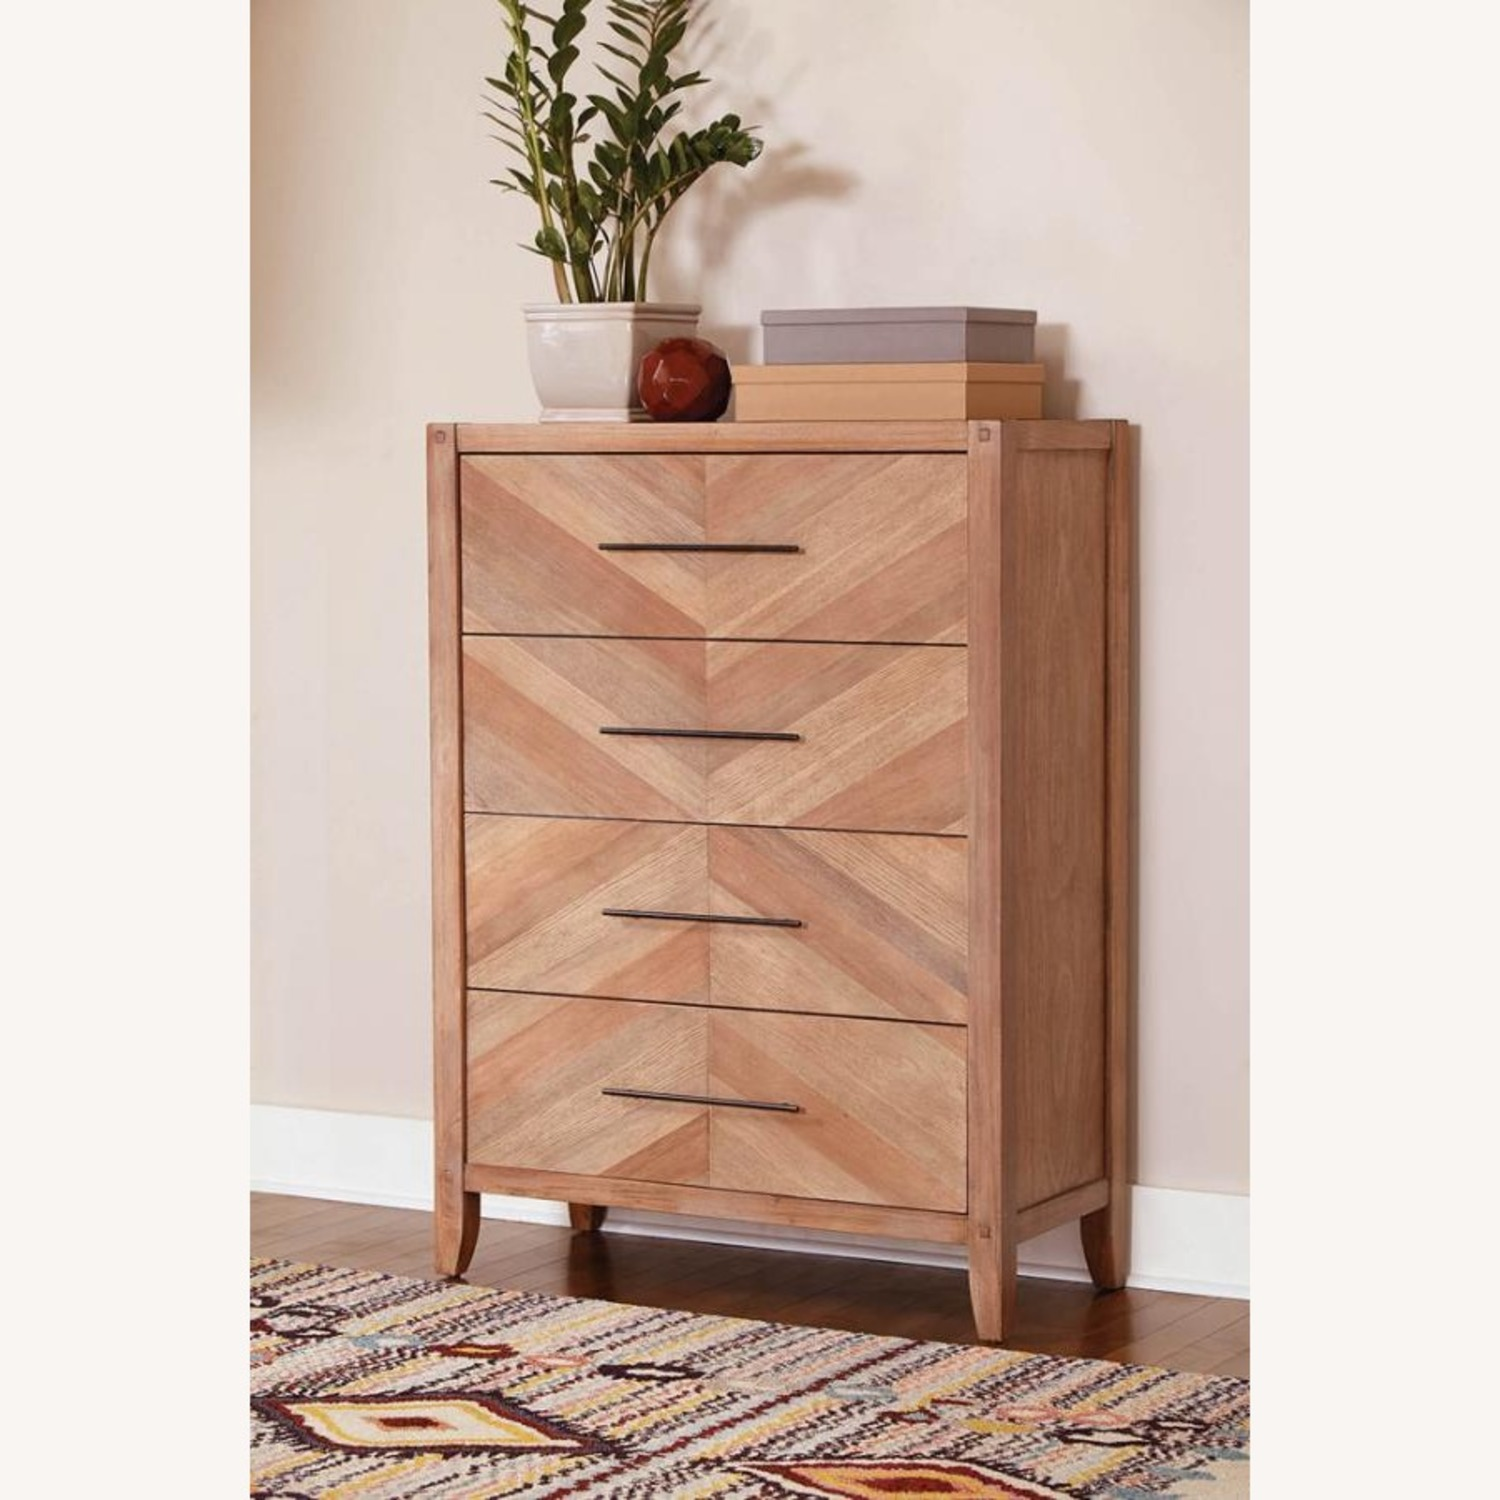 Chest in White Wash Natural Finish w/ Long Handles - image-4